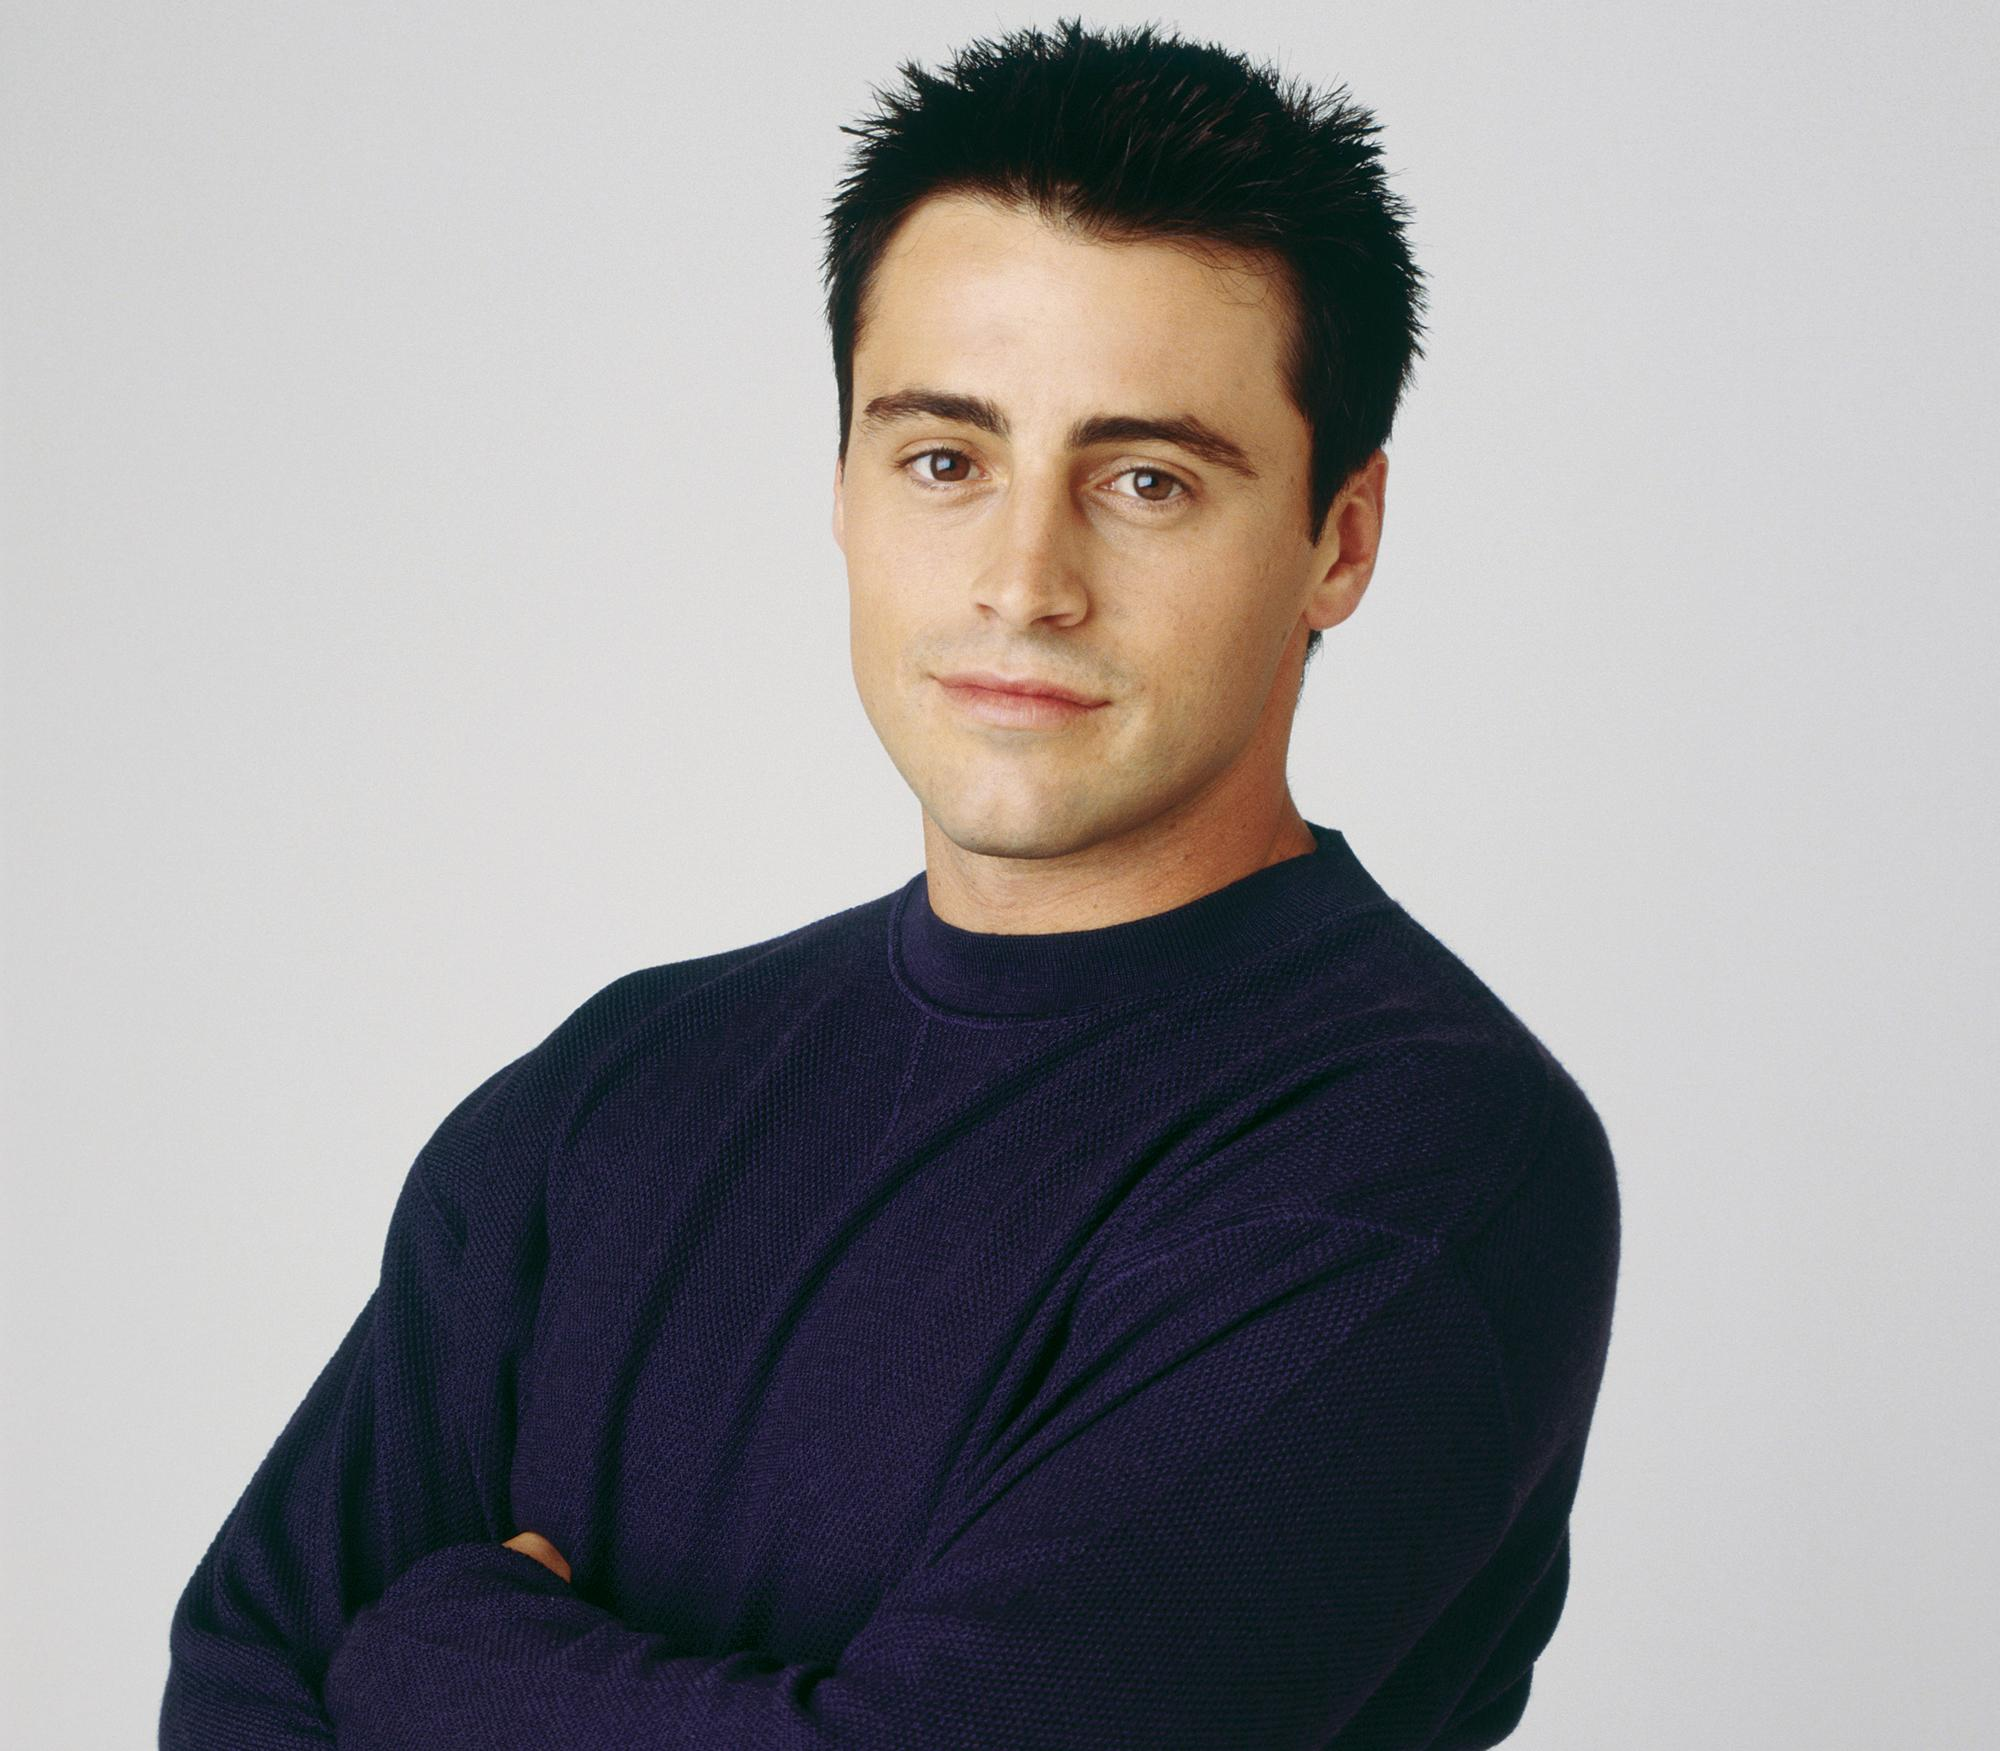 You'll never believe what Matt LeBlanc had to do to play Joey on Friends